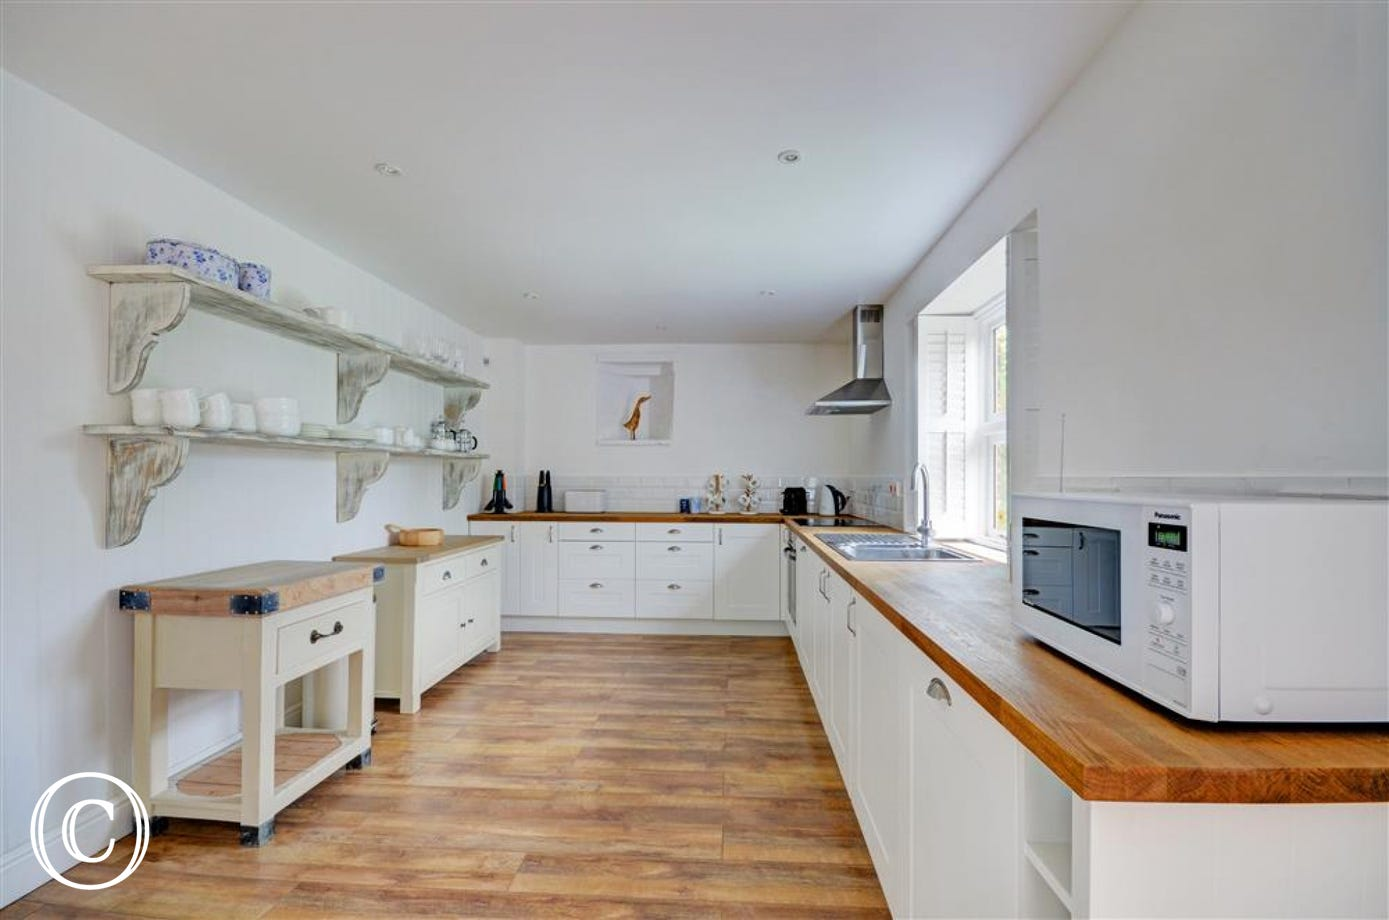 The kitchen is a spacious area with electric hob and oven